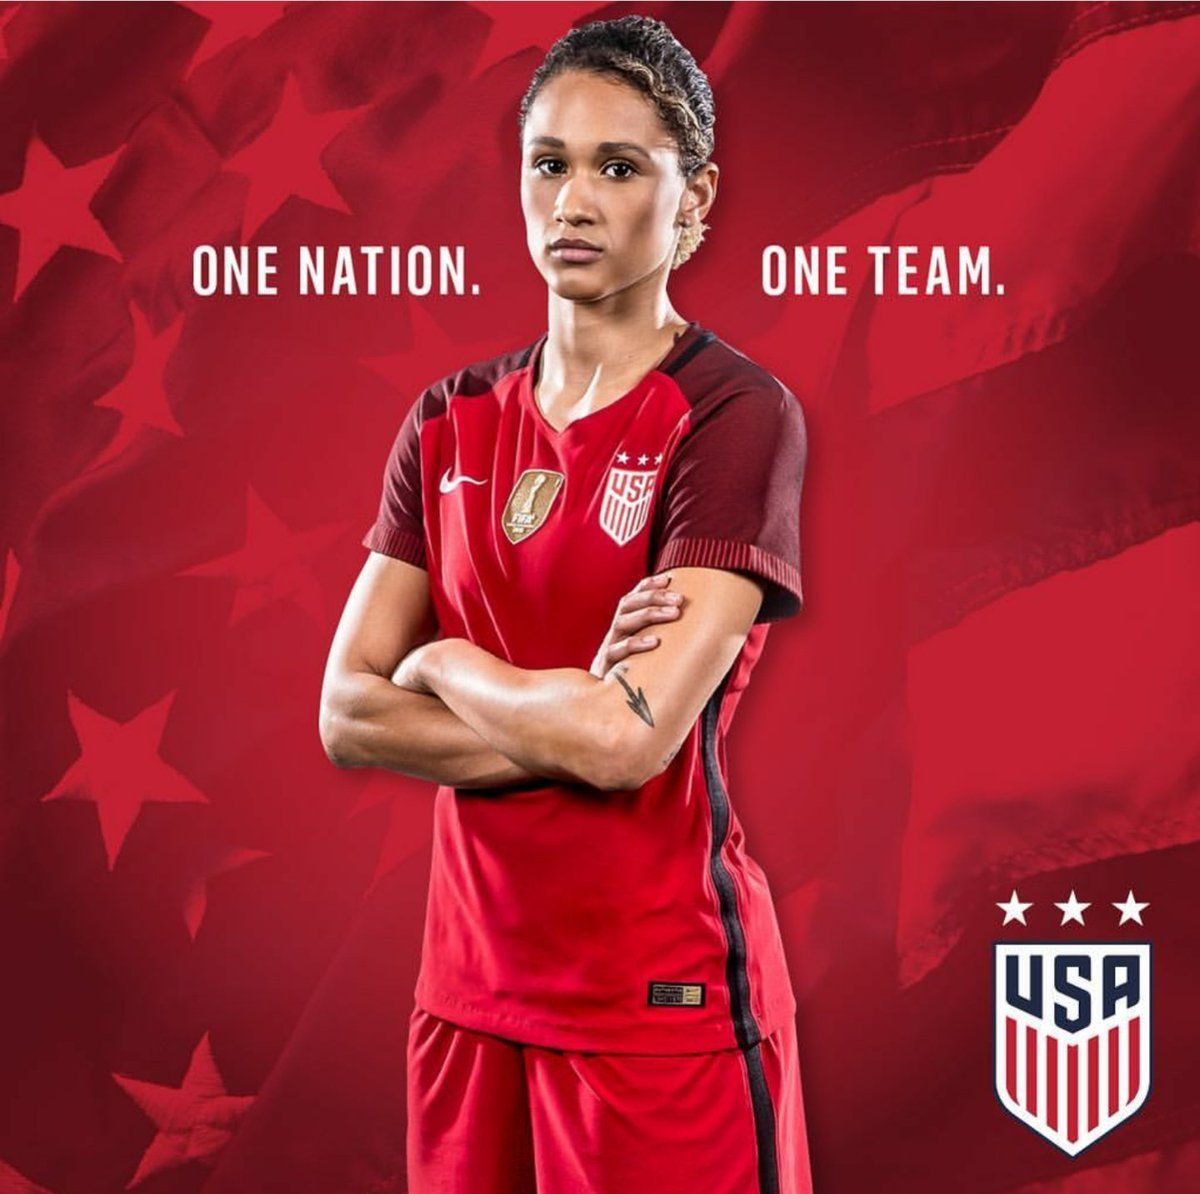 We&#39;re partial to blue and orange, but the red looks good on you @lynnraenie! #PeppAlum #WavesUp #USWNT <br>http://pic.twitter.com/FvAazU4Jbm